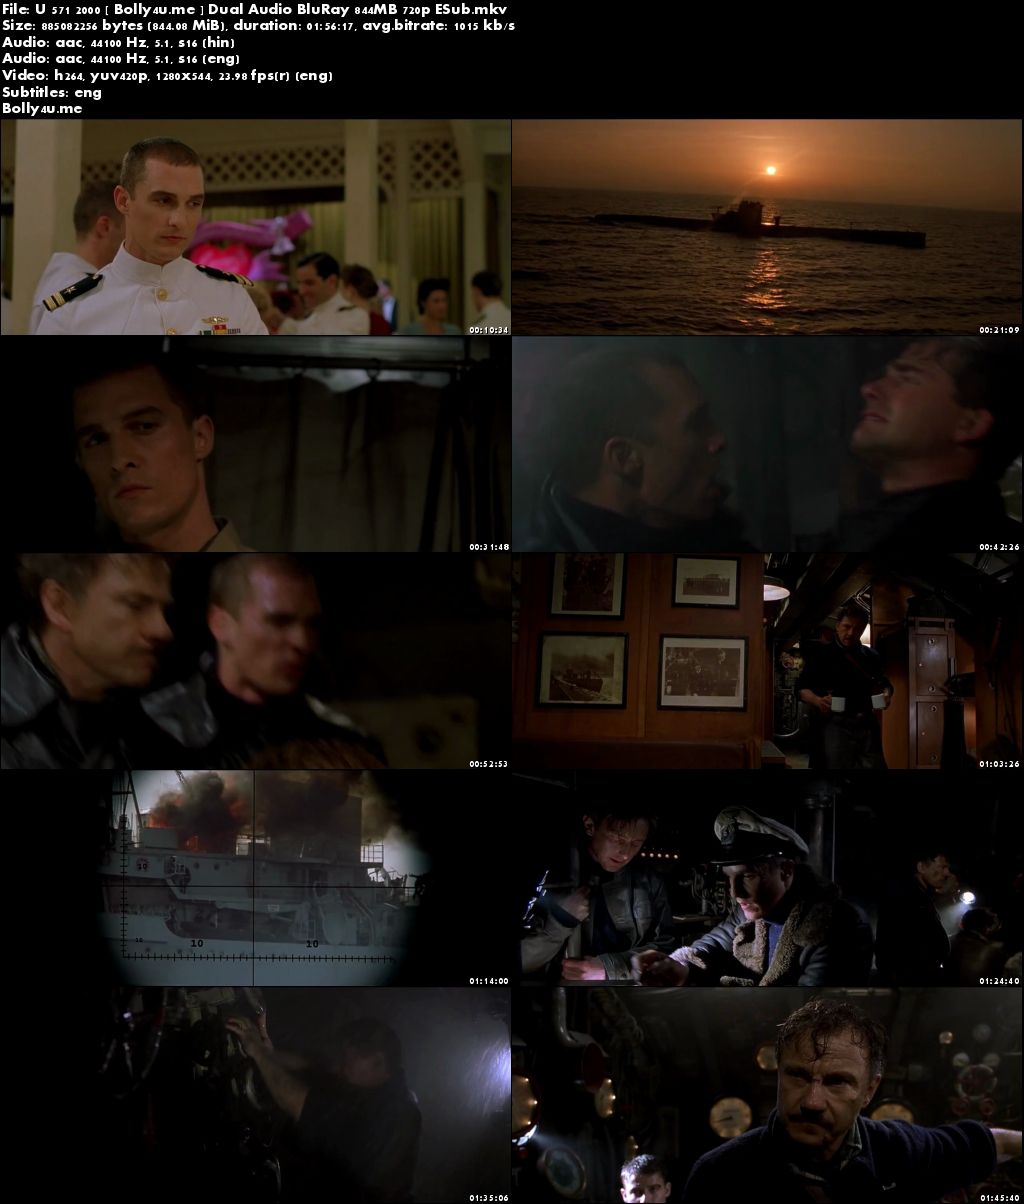 U-571 (2000) BRRip 850MB Hindi Dual Audio 720p ESub Download